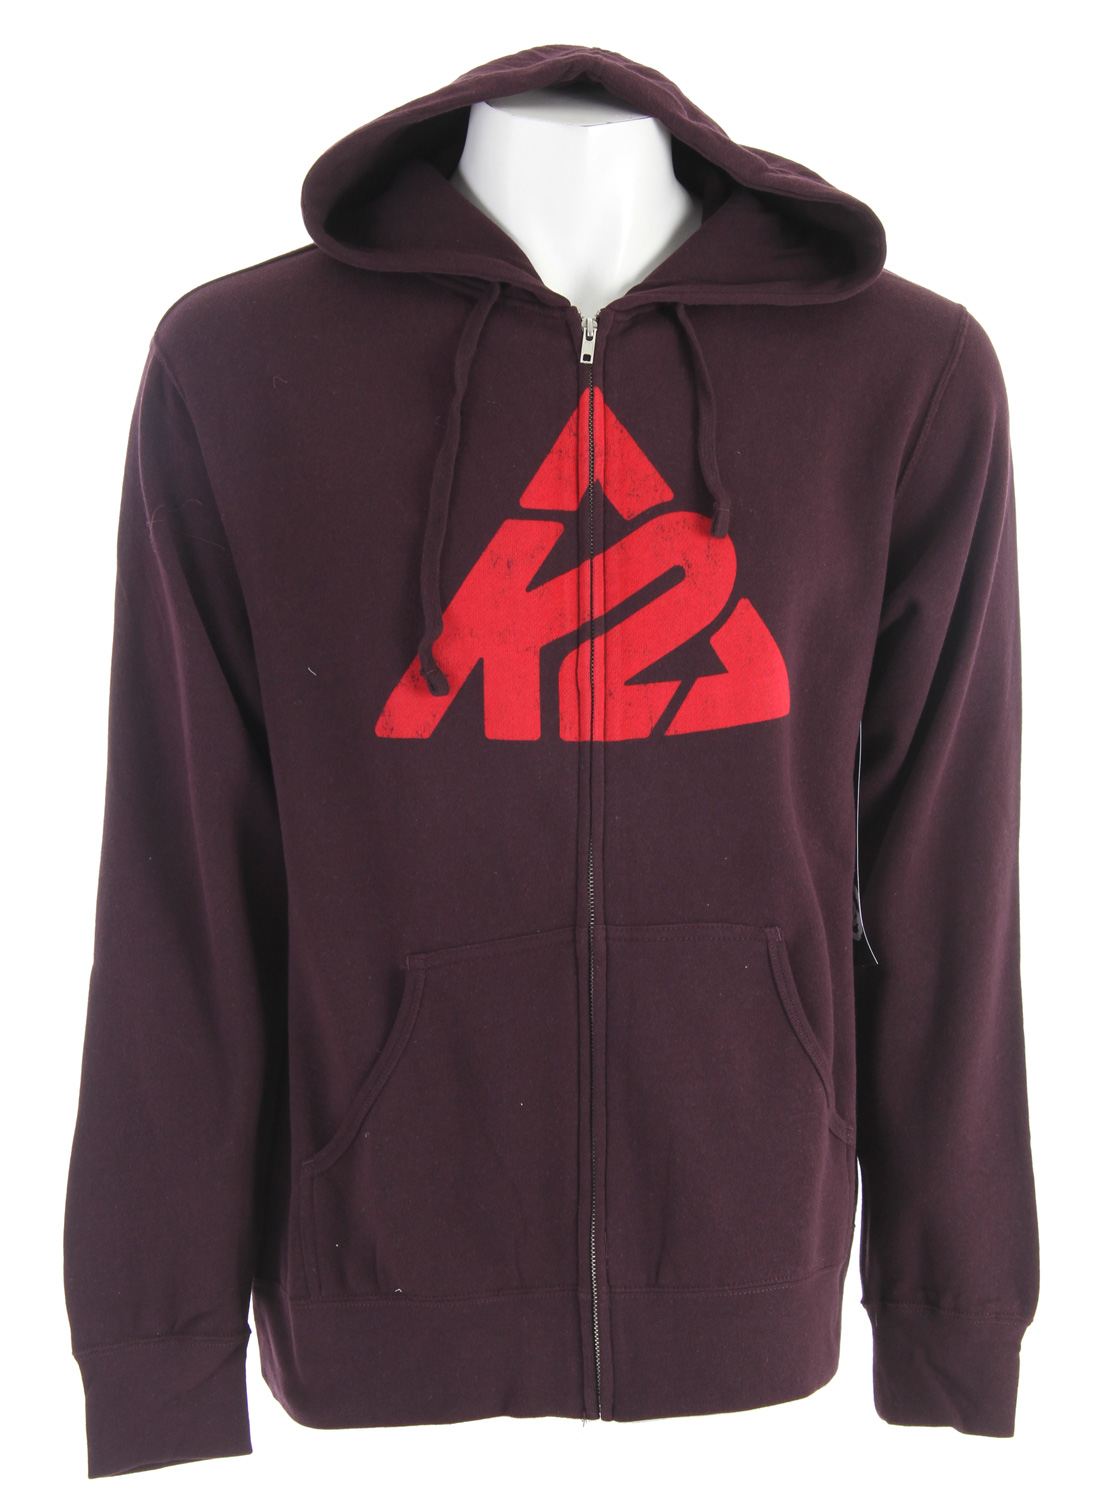 Snowboard The Brand, The Myth, The Legend. 80/20 Blend Fleece - $38.95